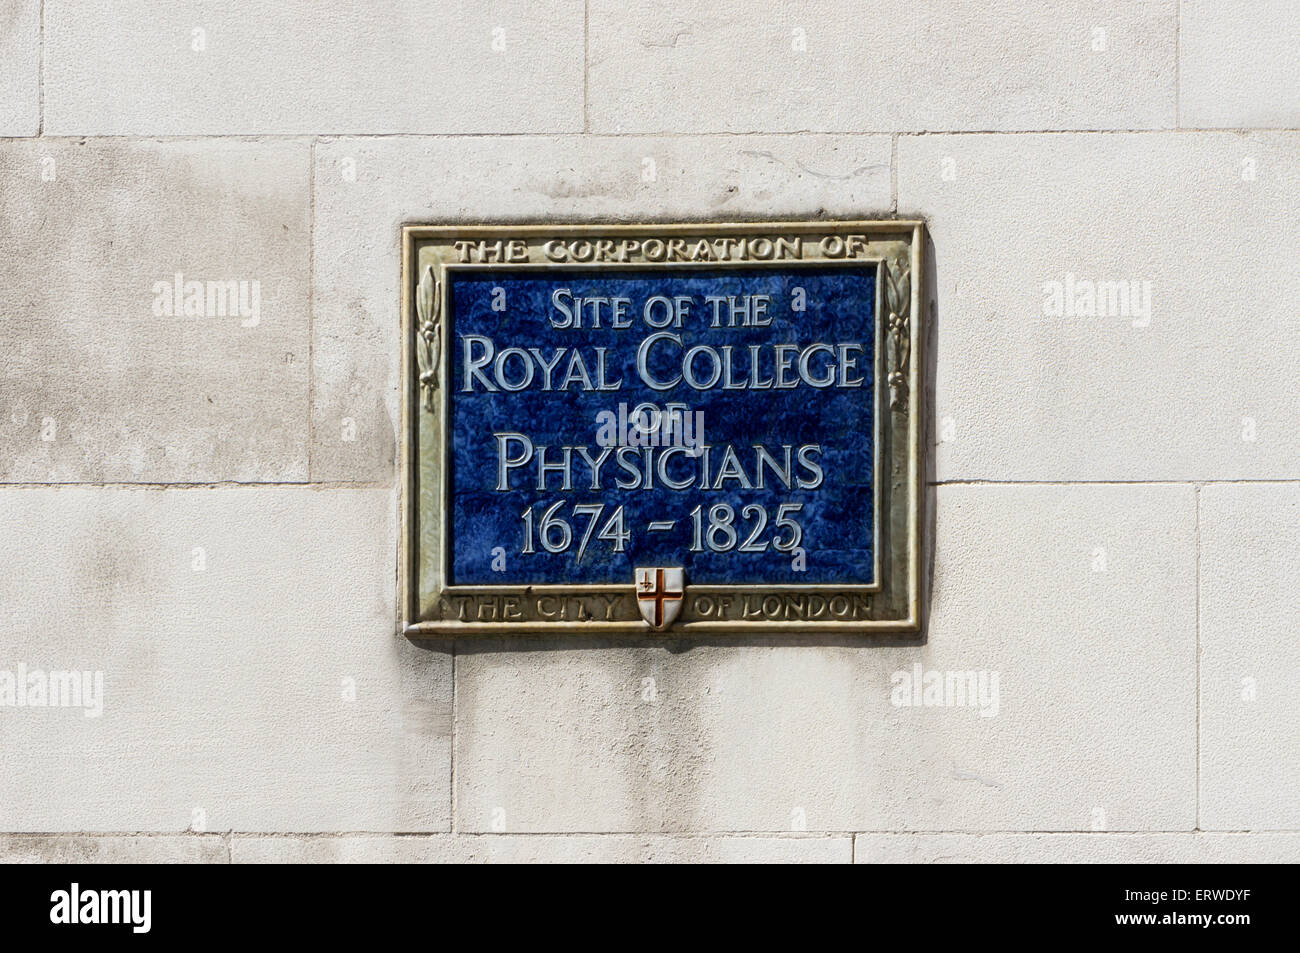 A plaque marks the site of the Royal College of Physicians in Warwick Lane, London. - Stock Image